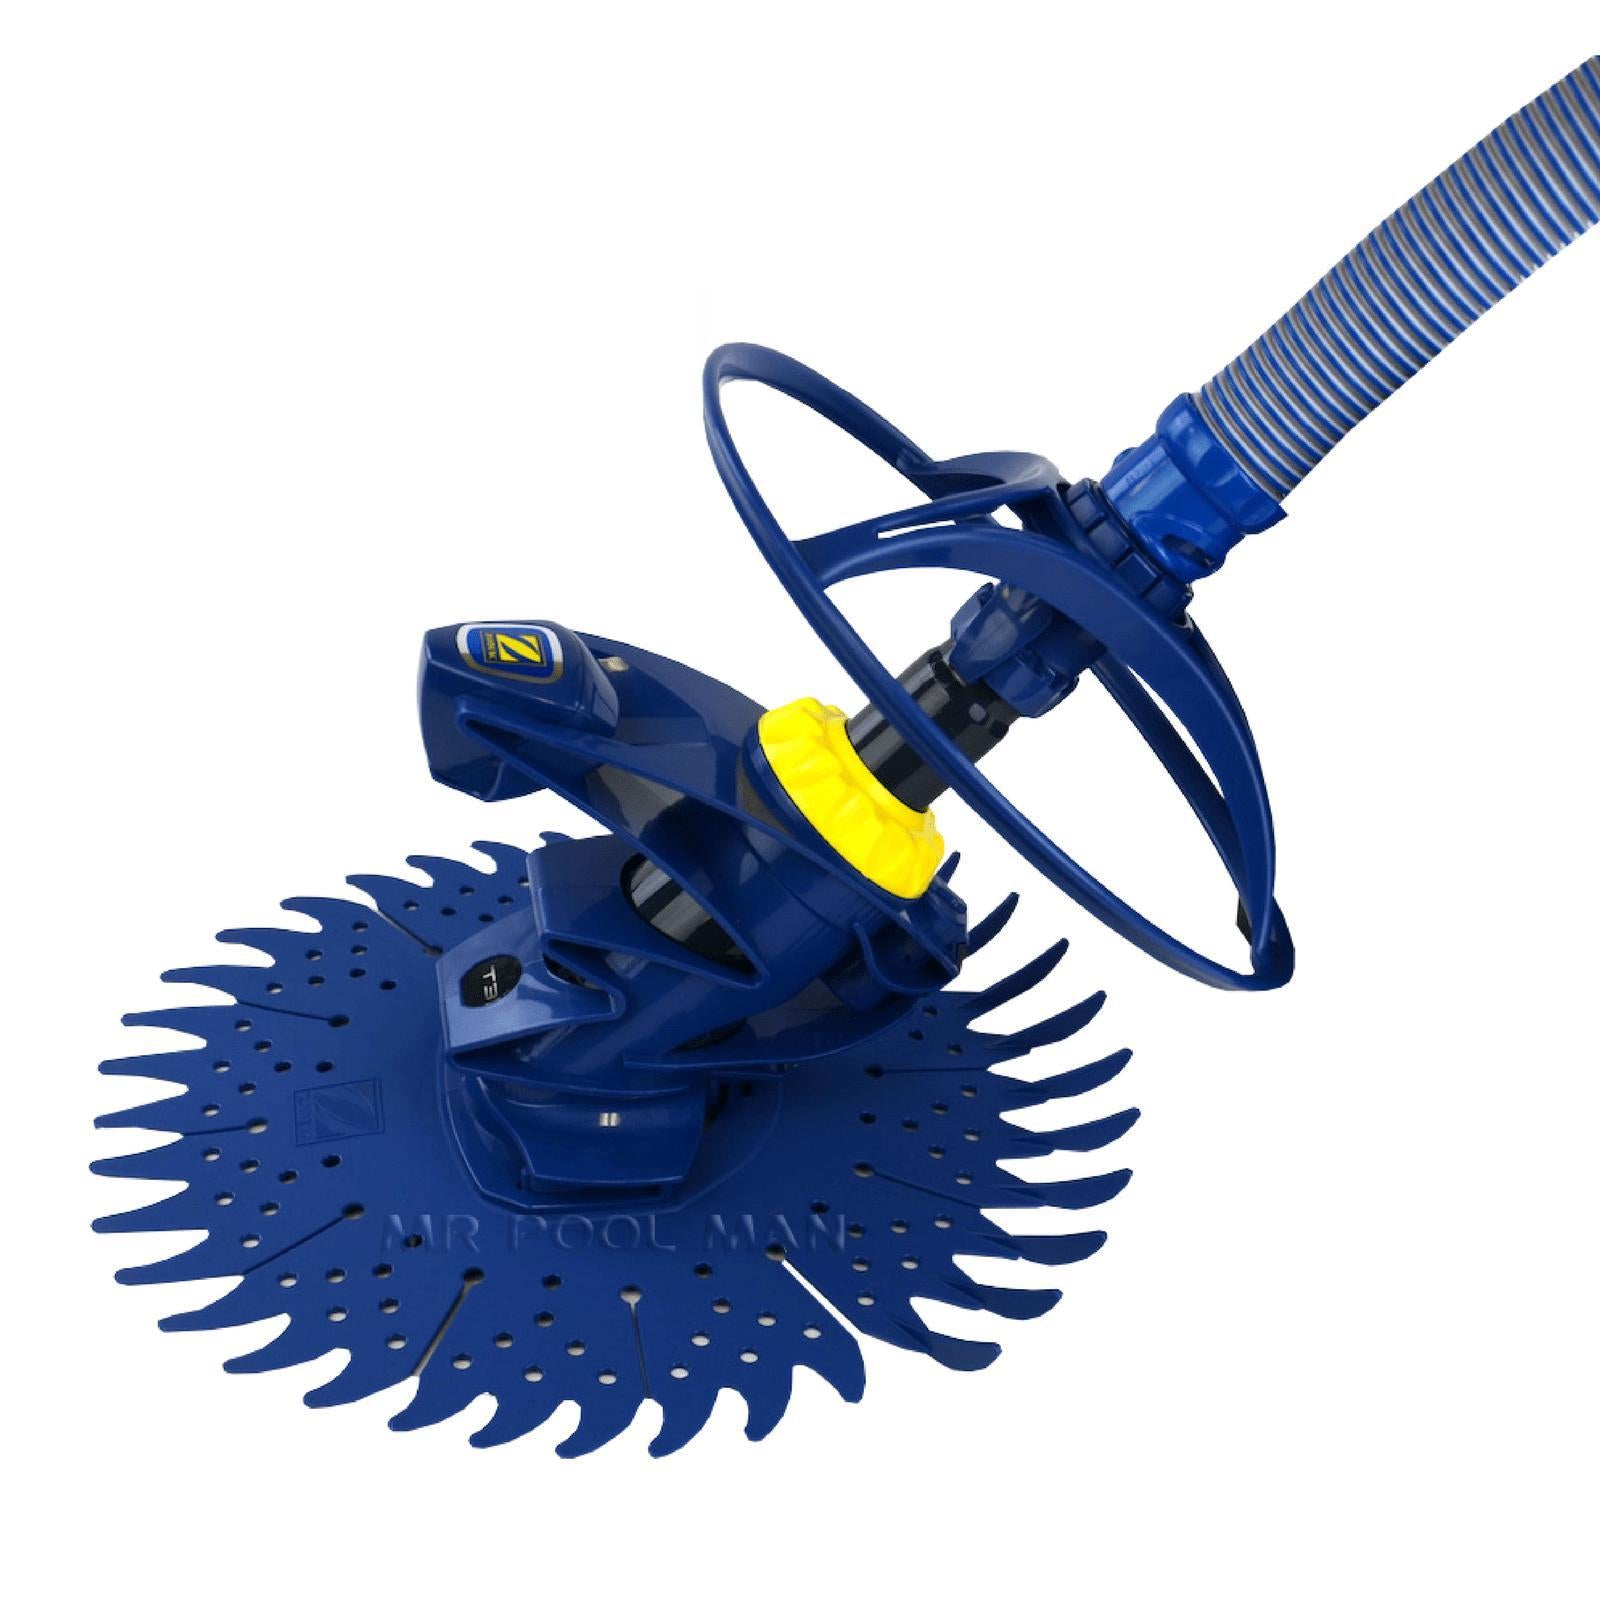 Zodiac T3 Automatic Pool Cleaner-Suction Cleaners-Mr Pool Man